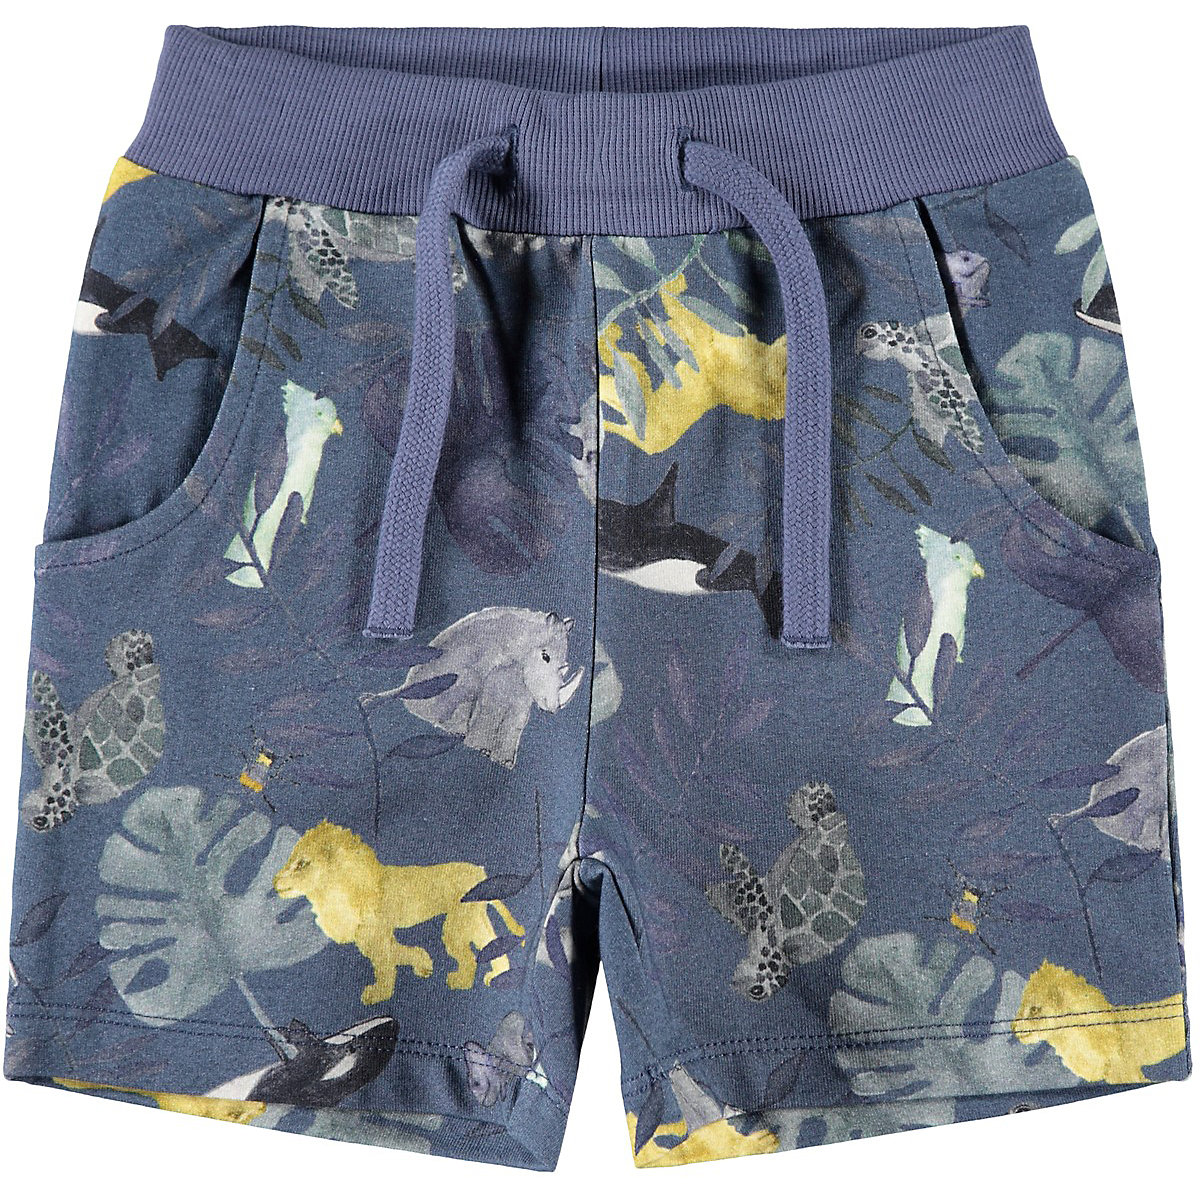 NAME IT Shorts 9383991 for boys and girls child sport for teenagers clothes Cotton Elastic Waist Boys